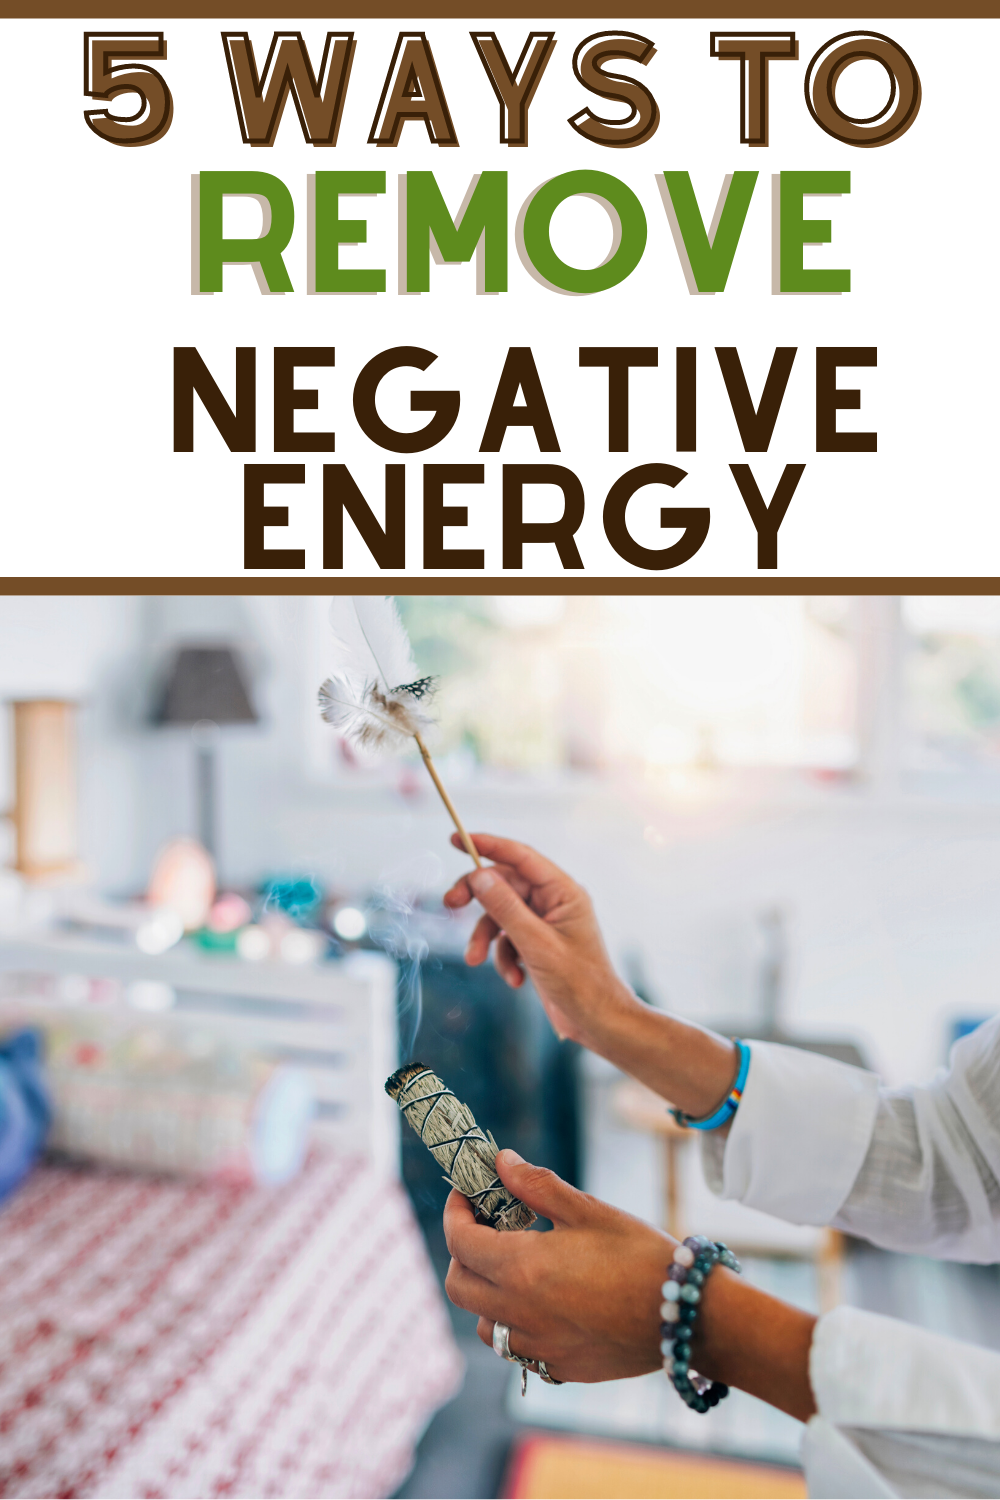 ways to remove negative energy